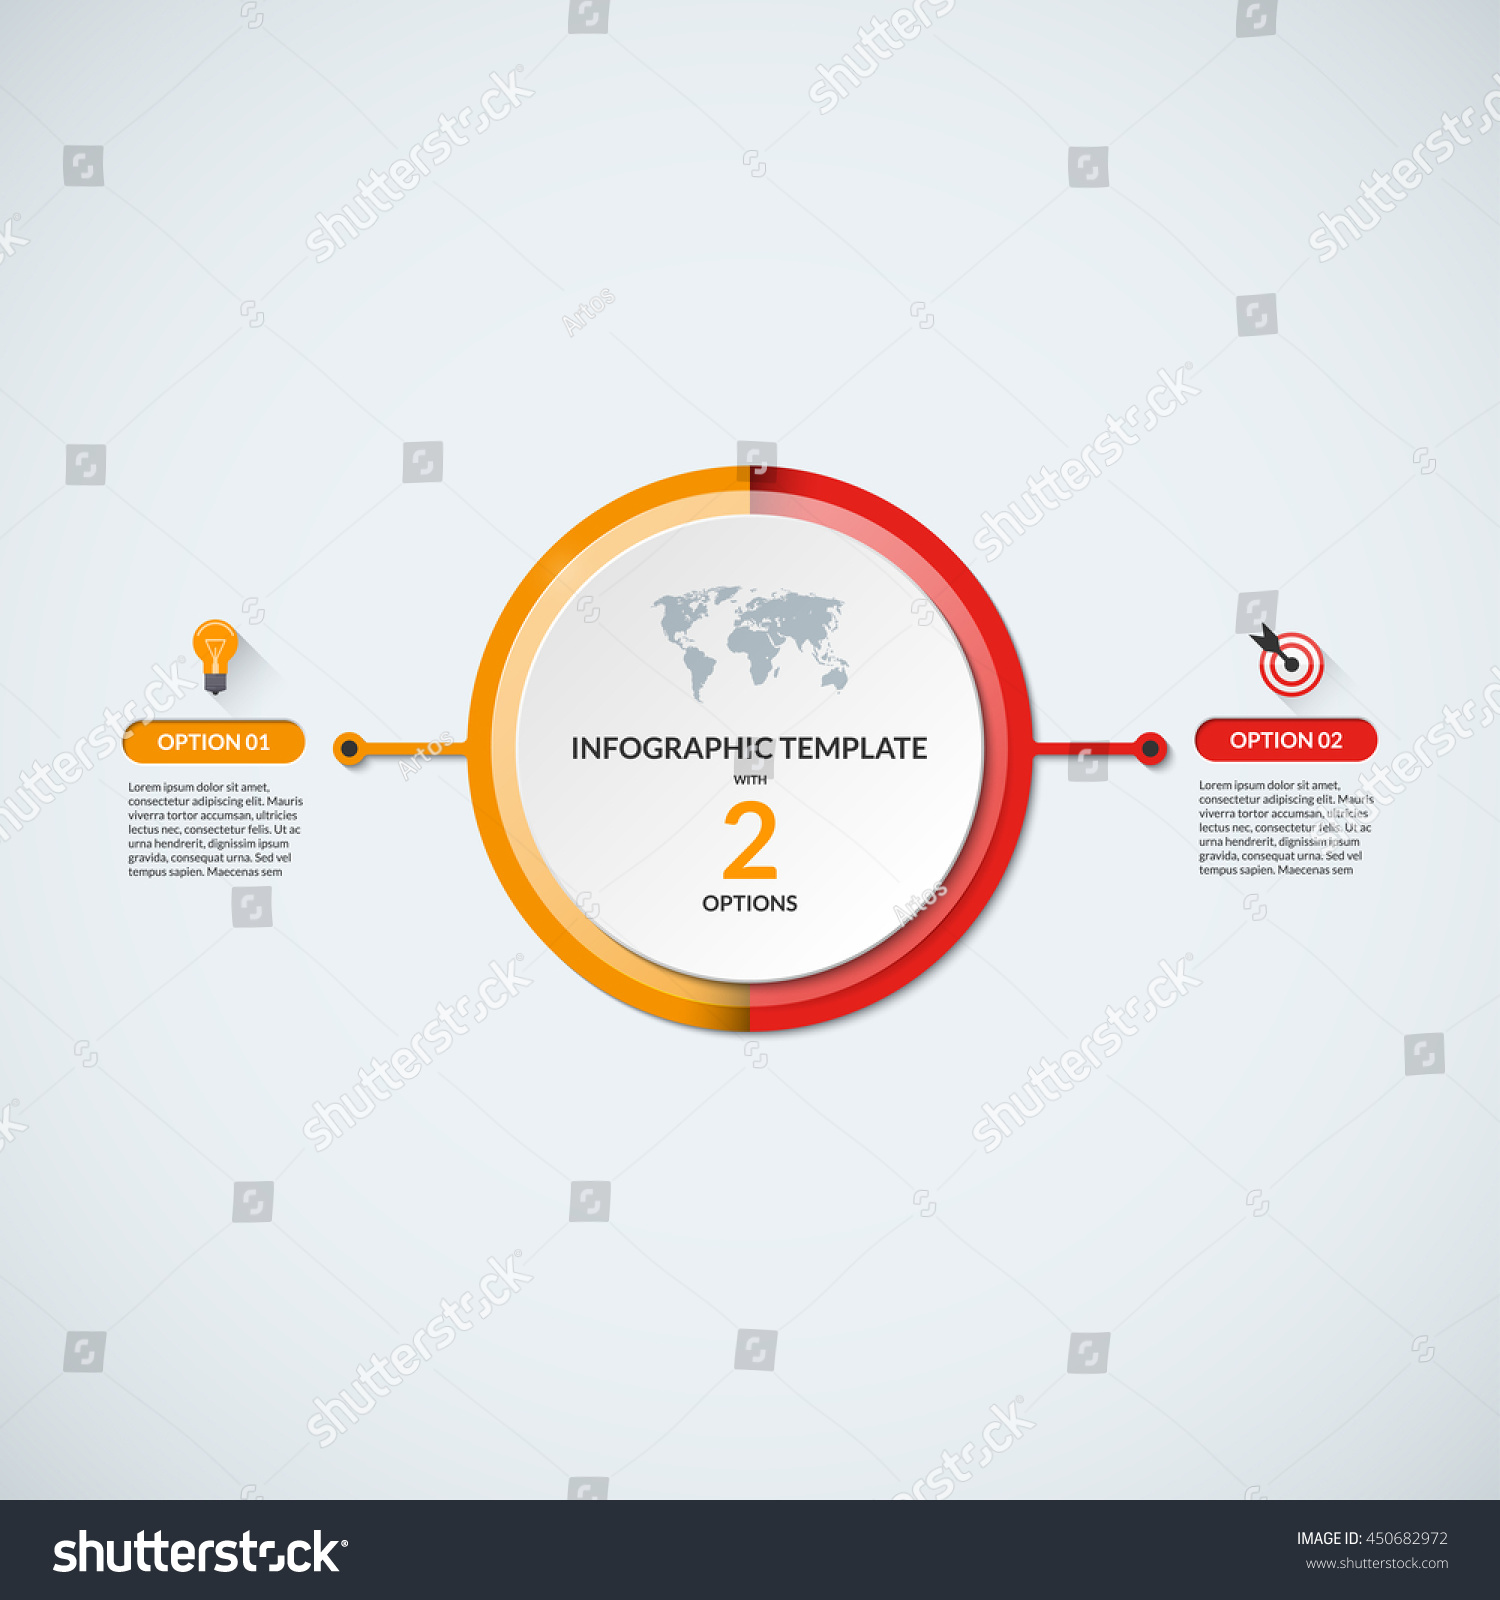 infographic circle diagram template business concept のベクター画像